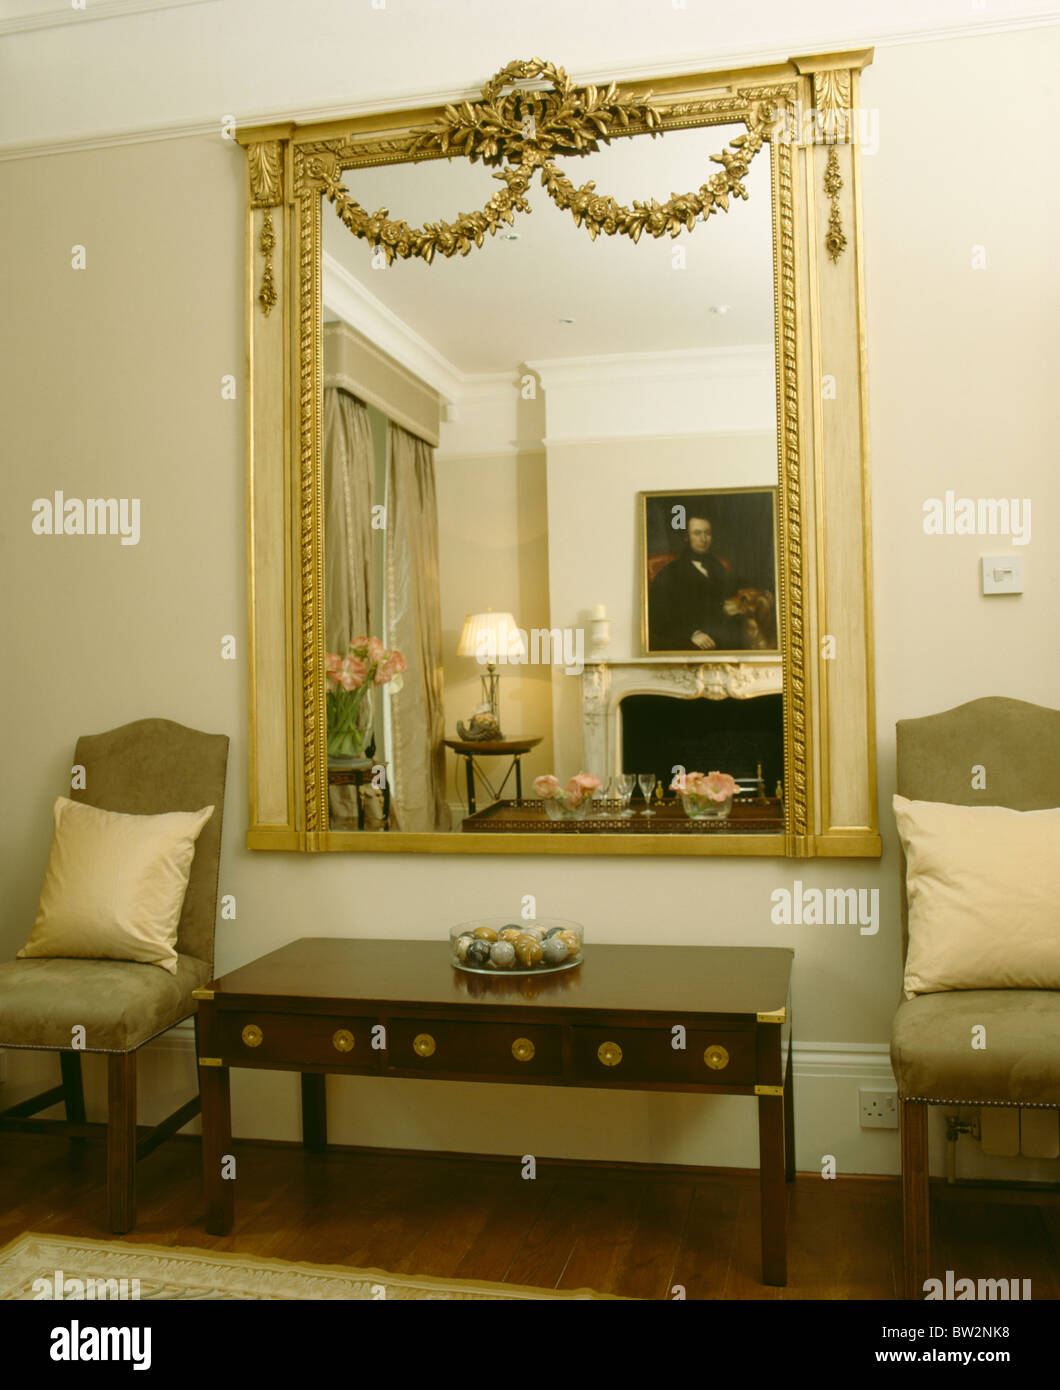 Large Ornate Gilt Antique Mirror On Wall Above Console Table In Traditional Dining Room